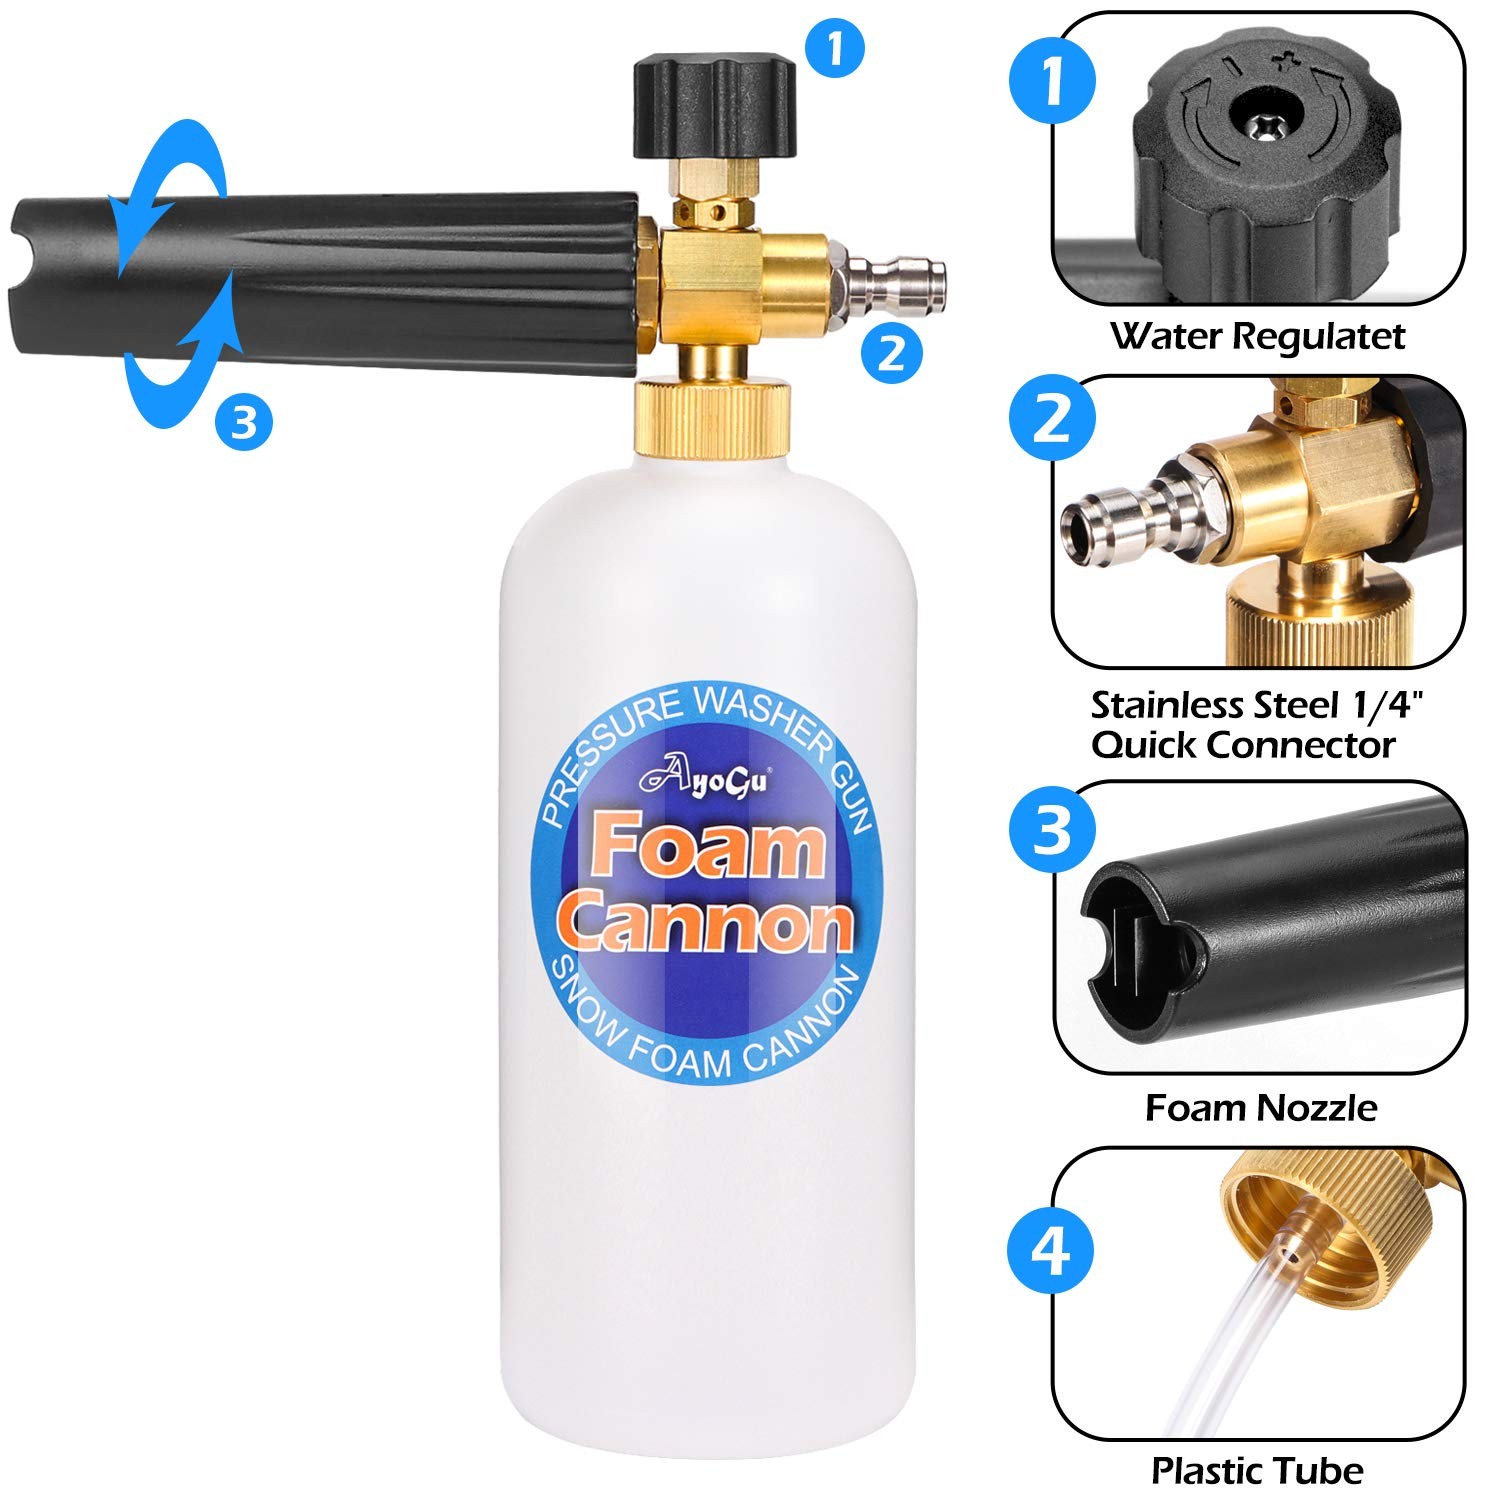 AYOGU1 Foam Cannon 1 Liter Bottle Adjustable Snow Foam Lance with 1//4 Quick Connector Foam Blaster Improved for Pressure Washer